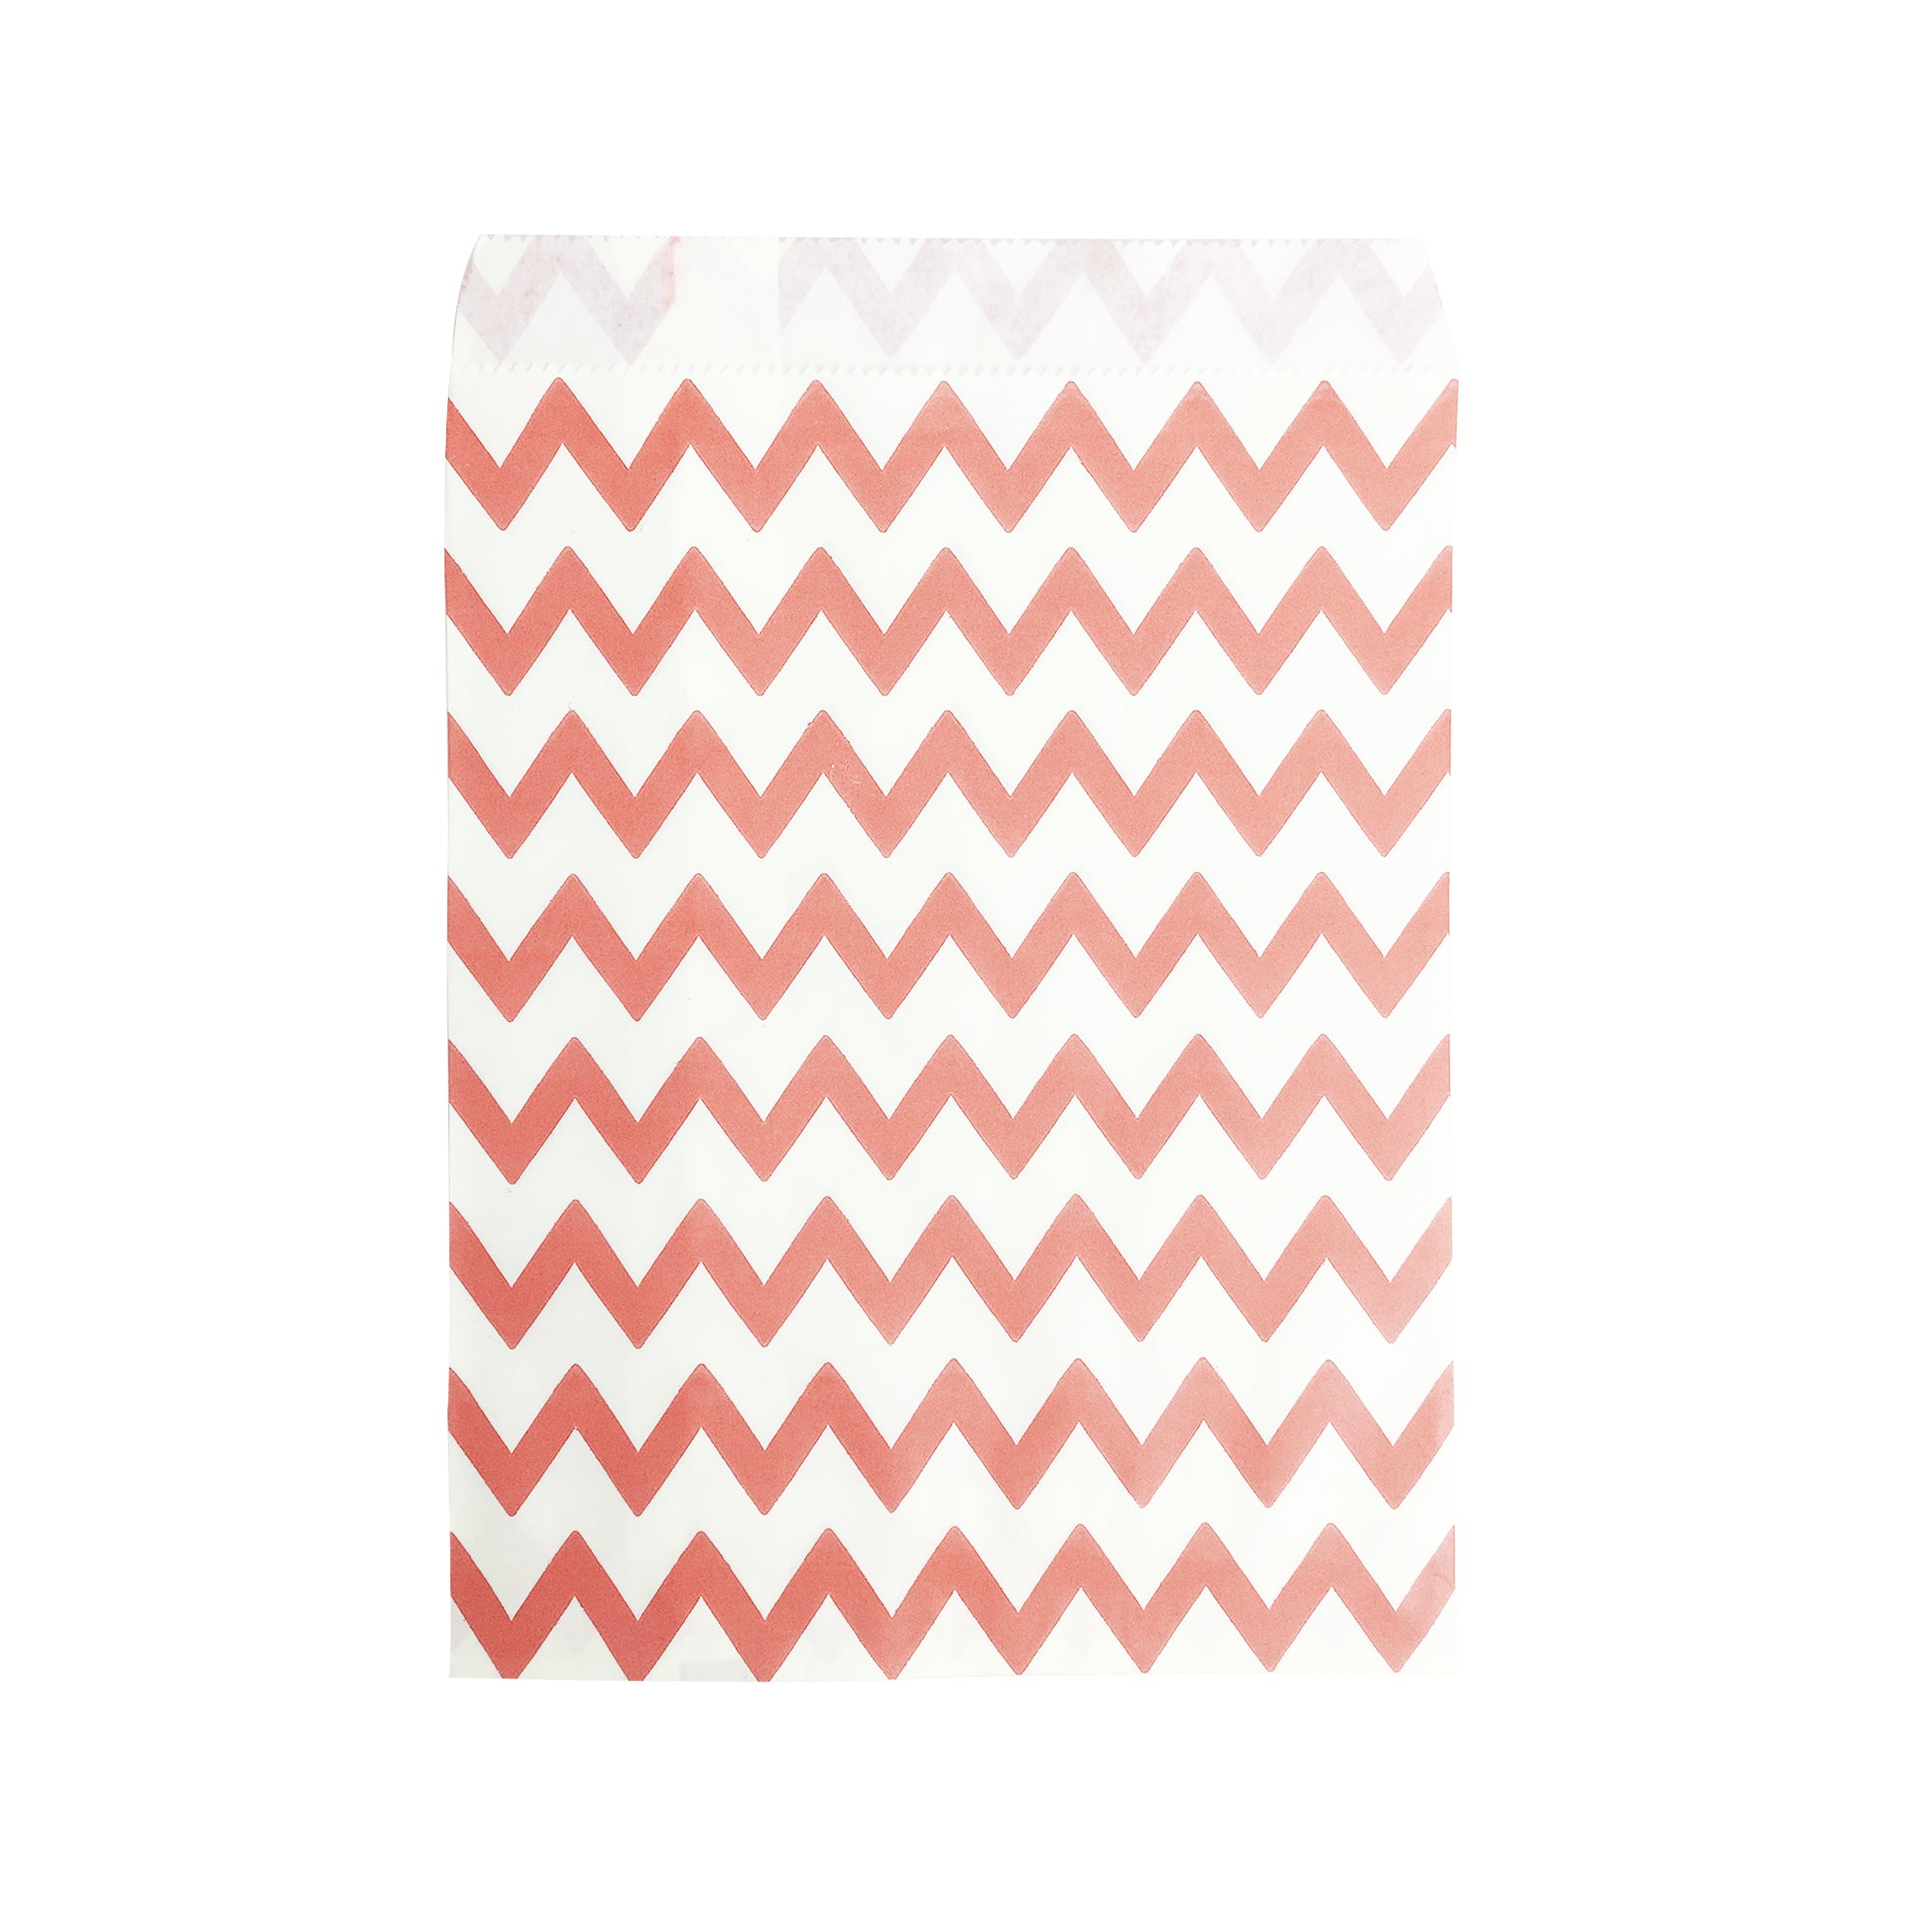 Small Peach Zigzag Paper Bags - 100 pcs